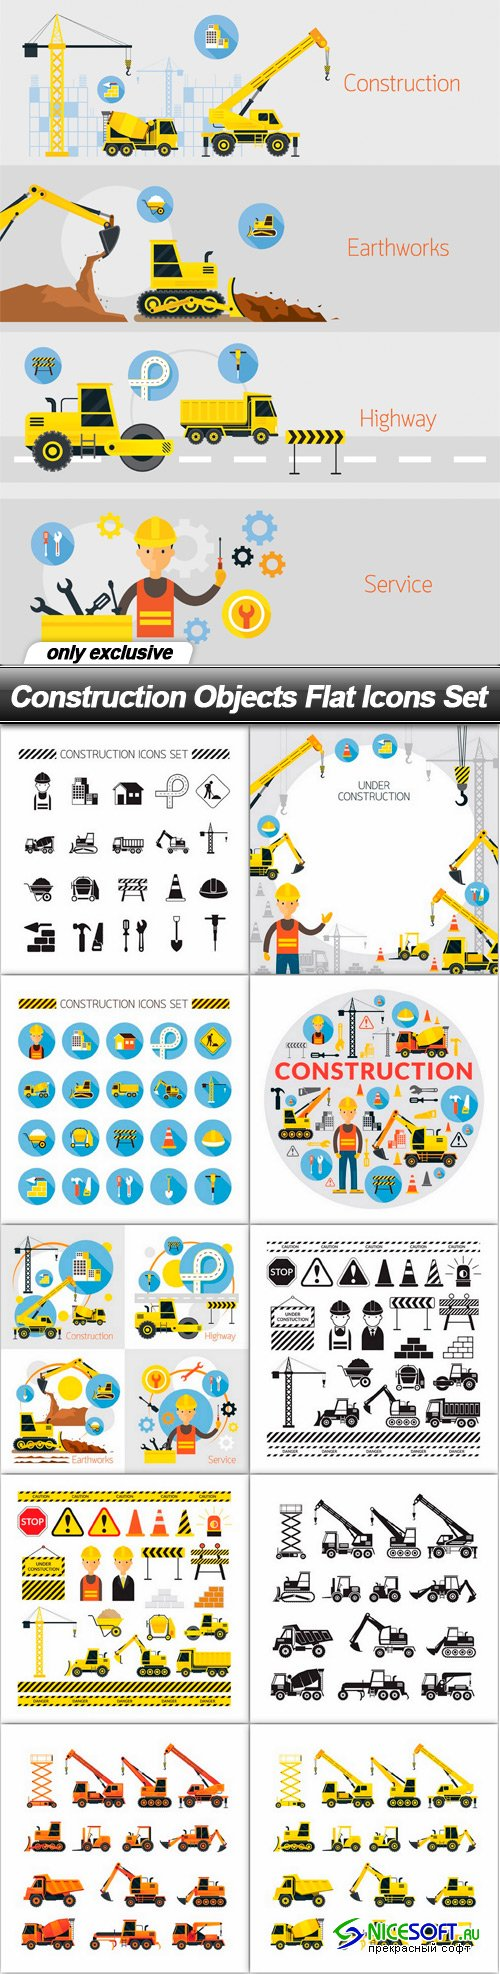 Construction Objects Flat Icons Set